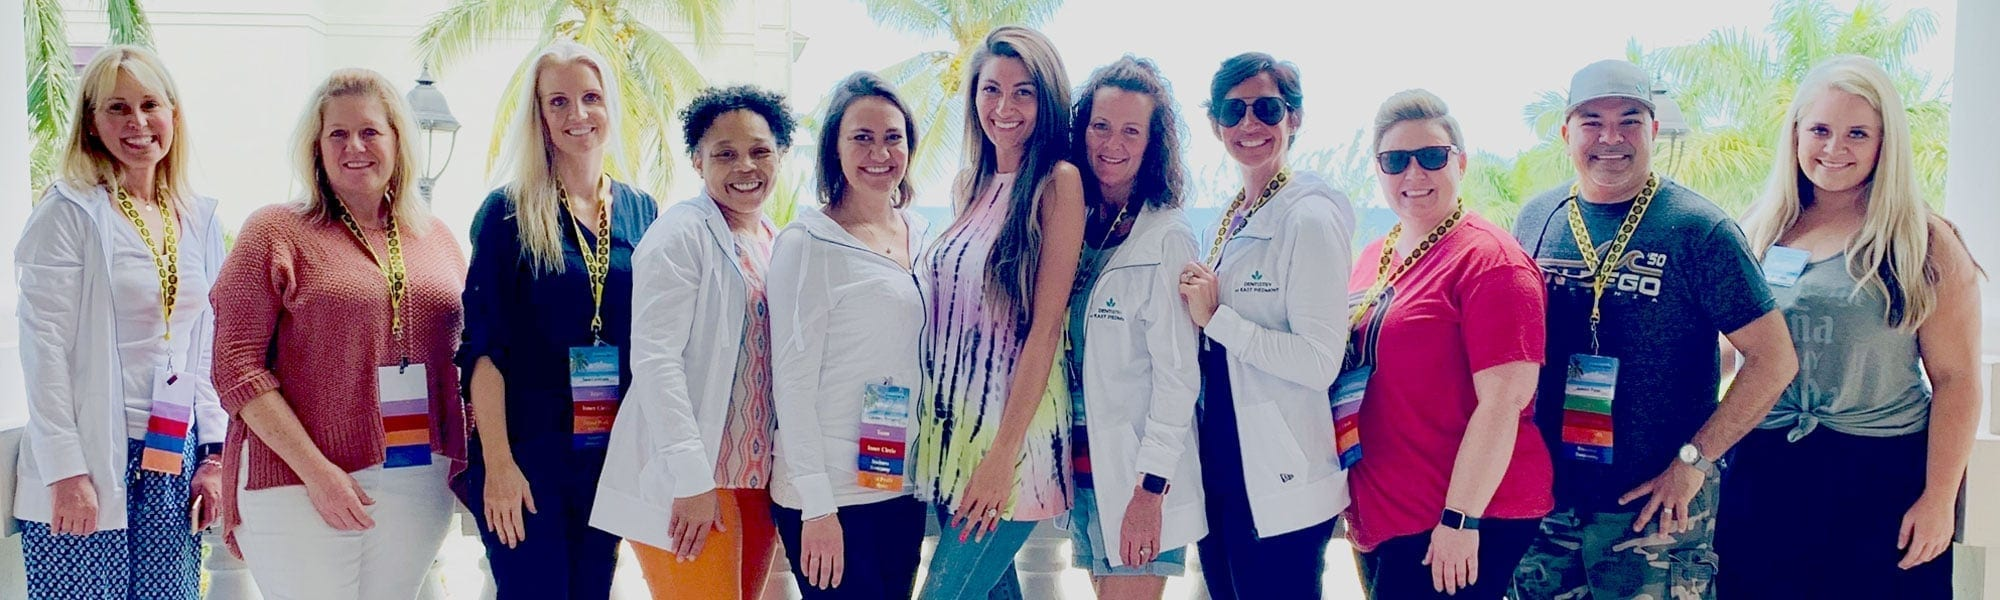 Dentistry staff at Jamaica offsite